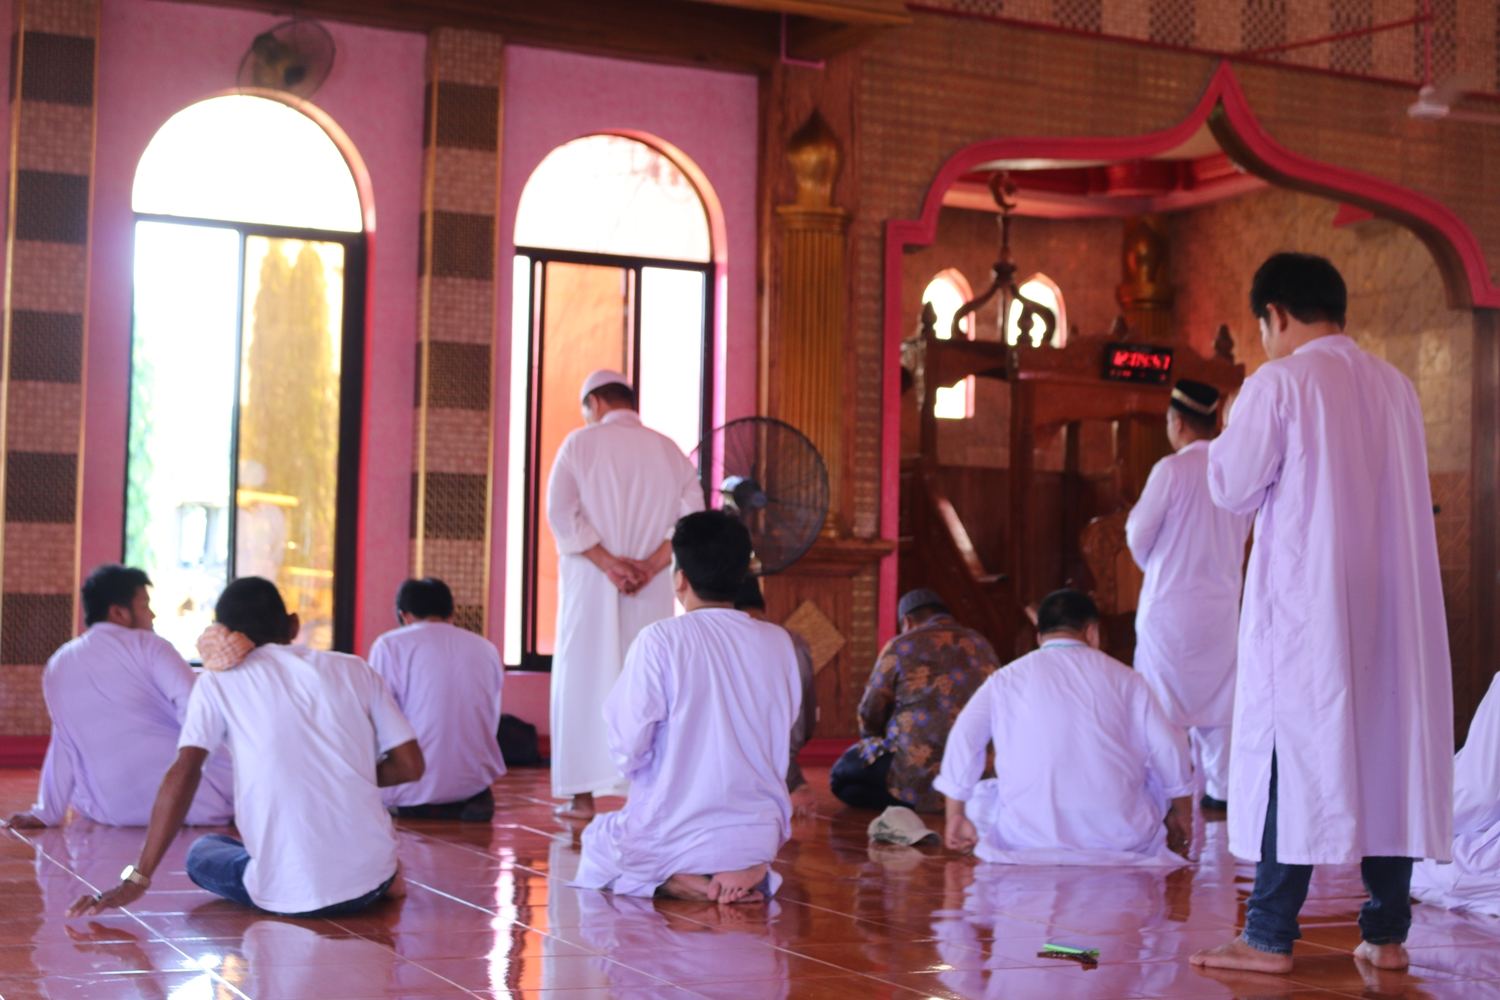 Faith Tourism launched in Province of Maguindanao through Mosque Tour Program